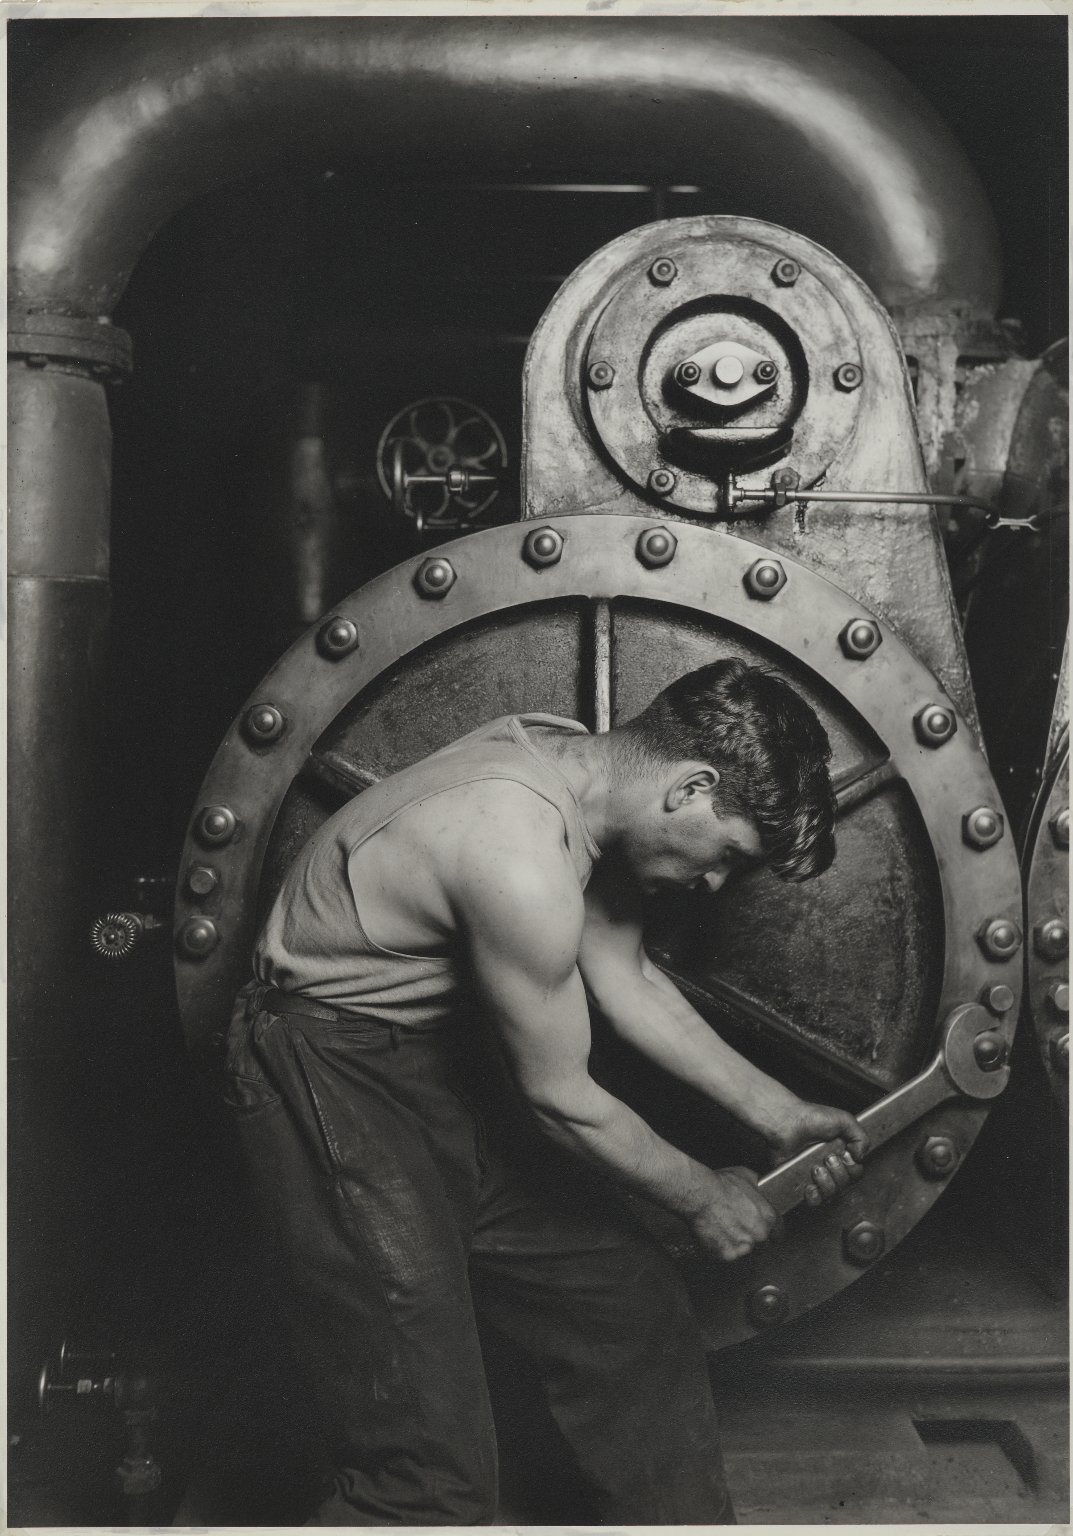 Power House Mechanic by Lewis Wickes Hine